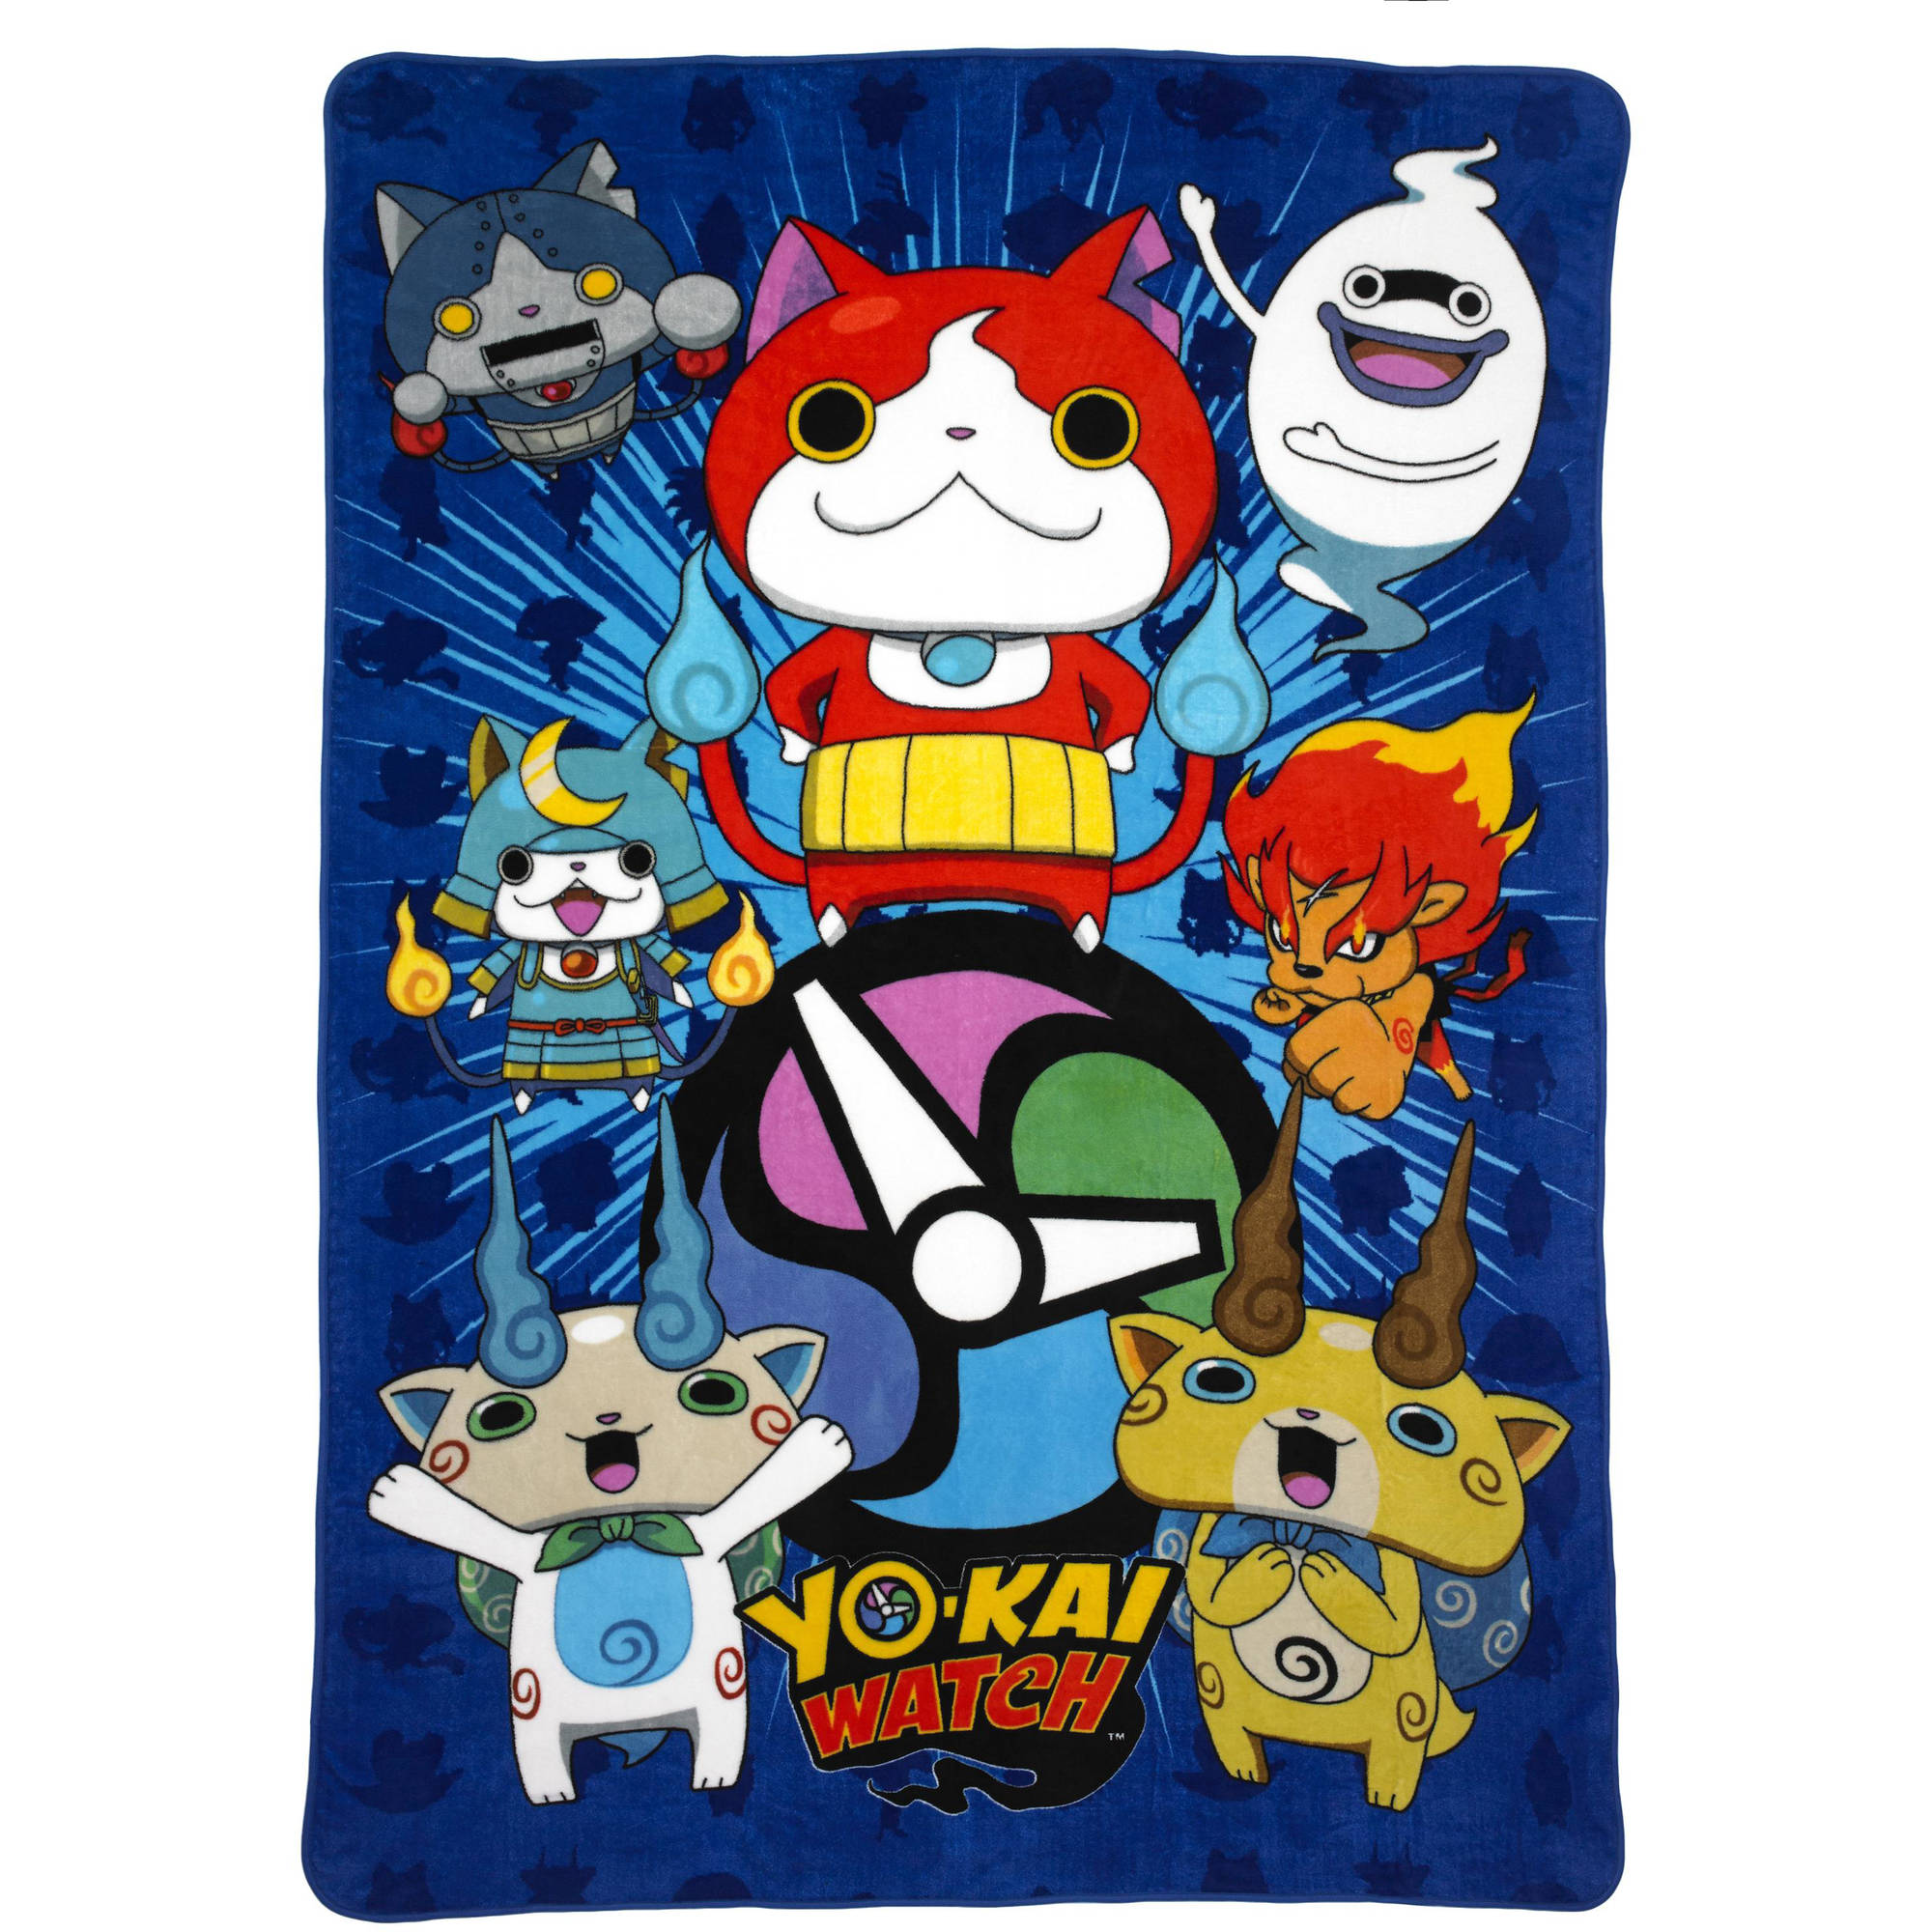 "Yokai Watch ""Watch This"" Reversible Twin/Full Bedding Comforter"